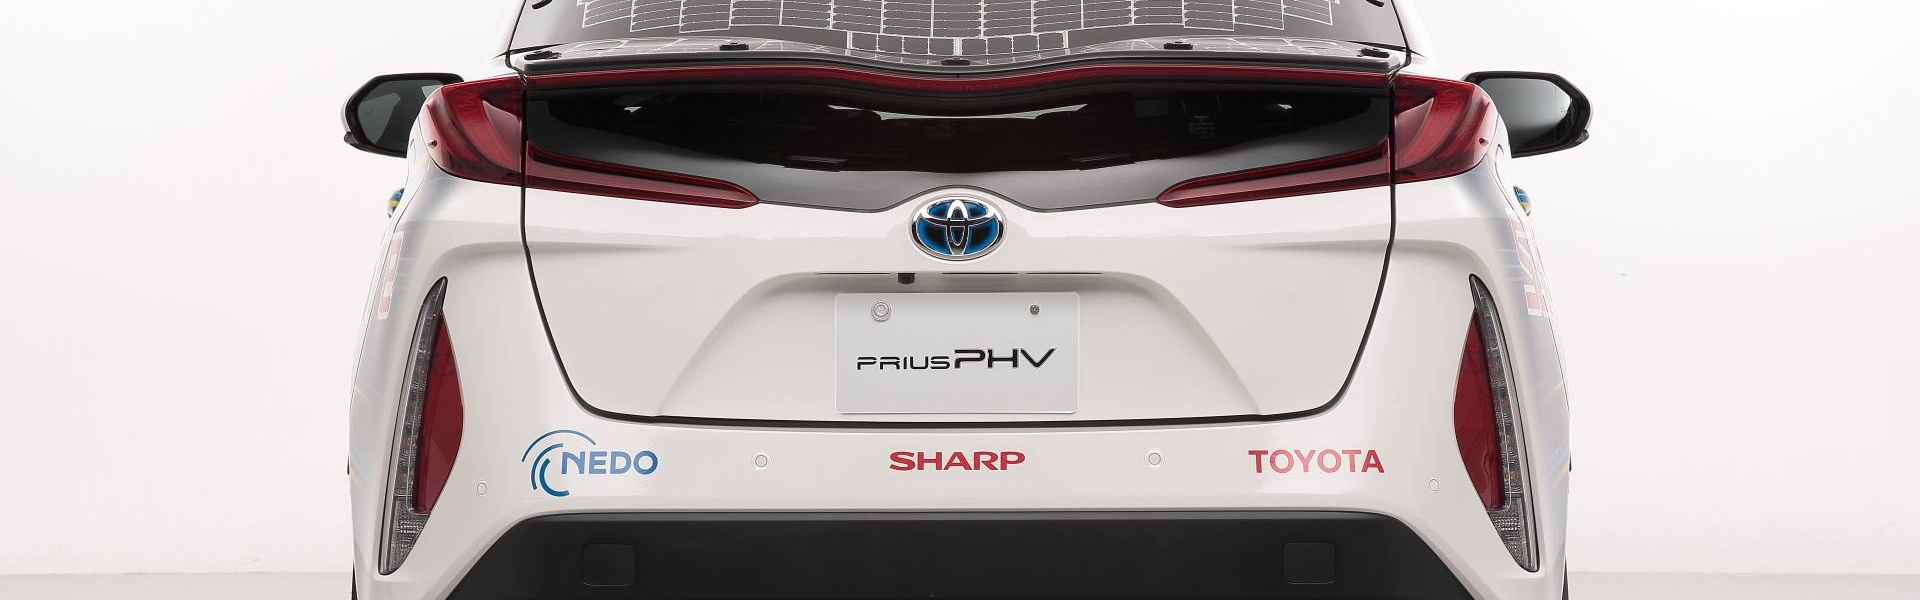 toyota-prius-phv-demo-car-with-solar-panels-2.jpg